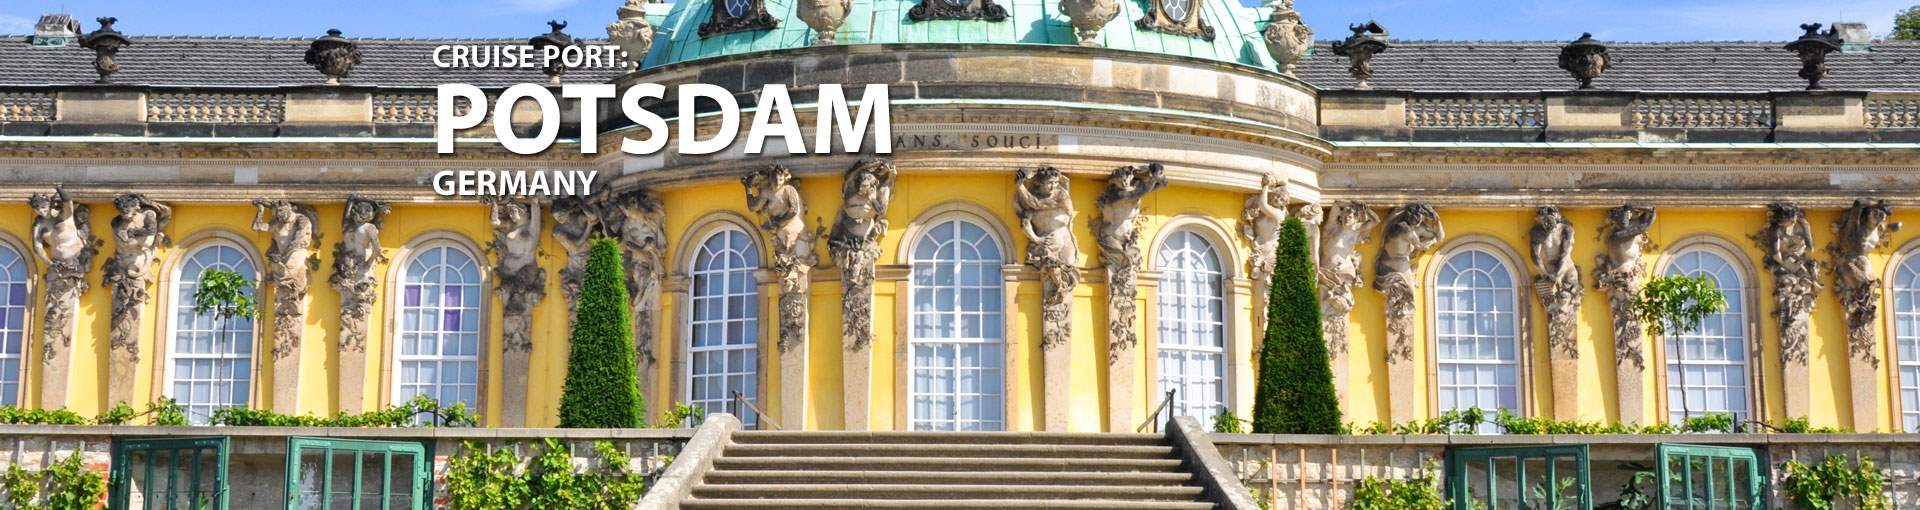 Cruises to Potsdam, Germany